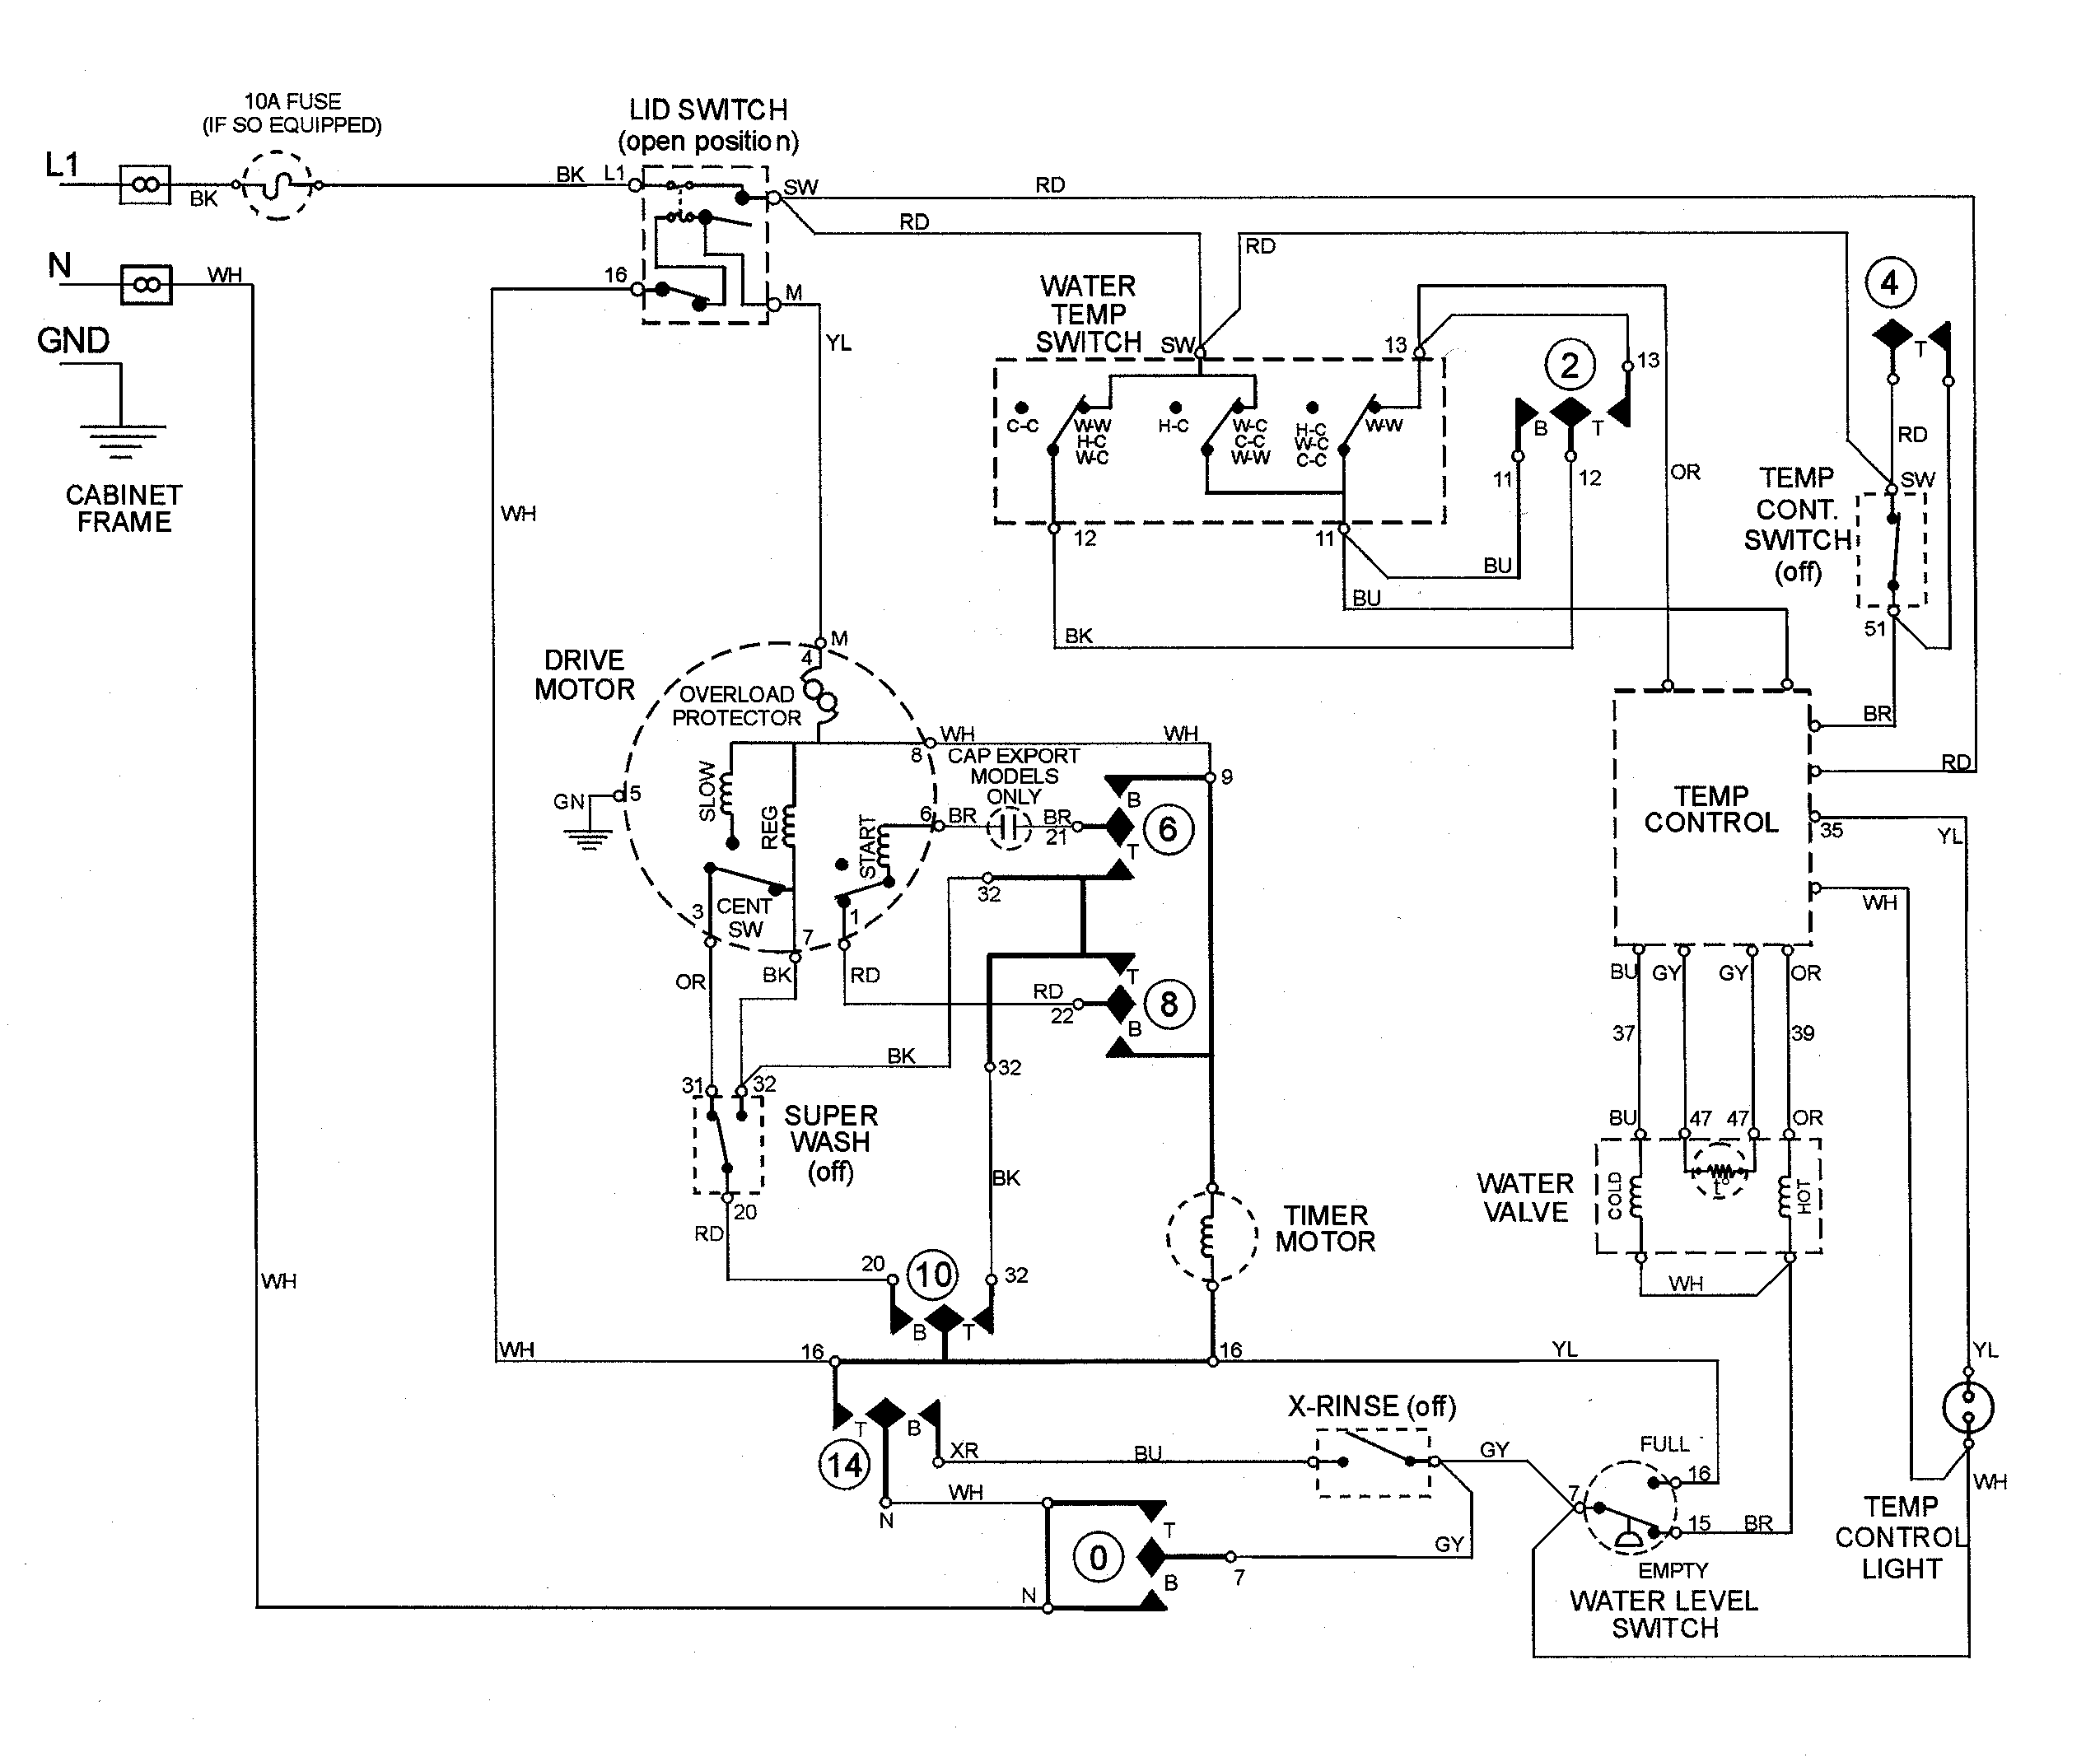 Wiring Diagram Of Washing Machine Pdf - Wiring Diagram Work on